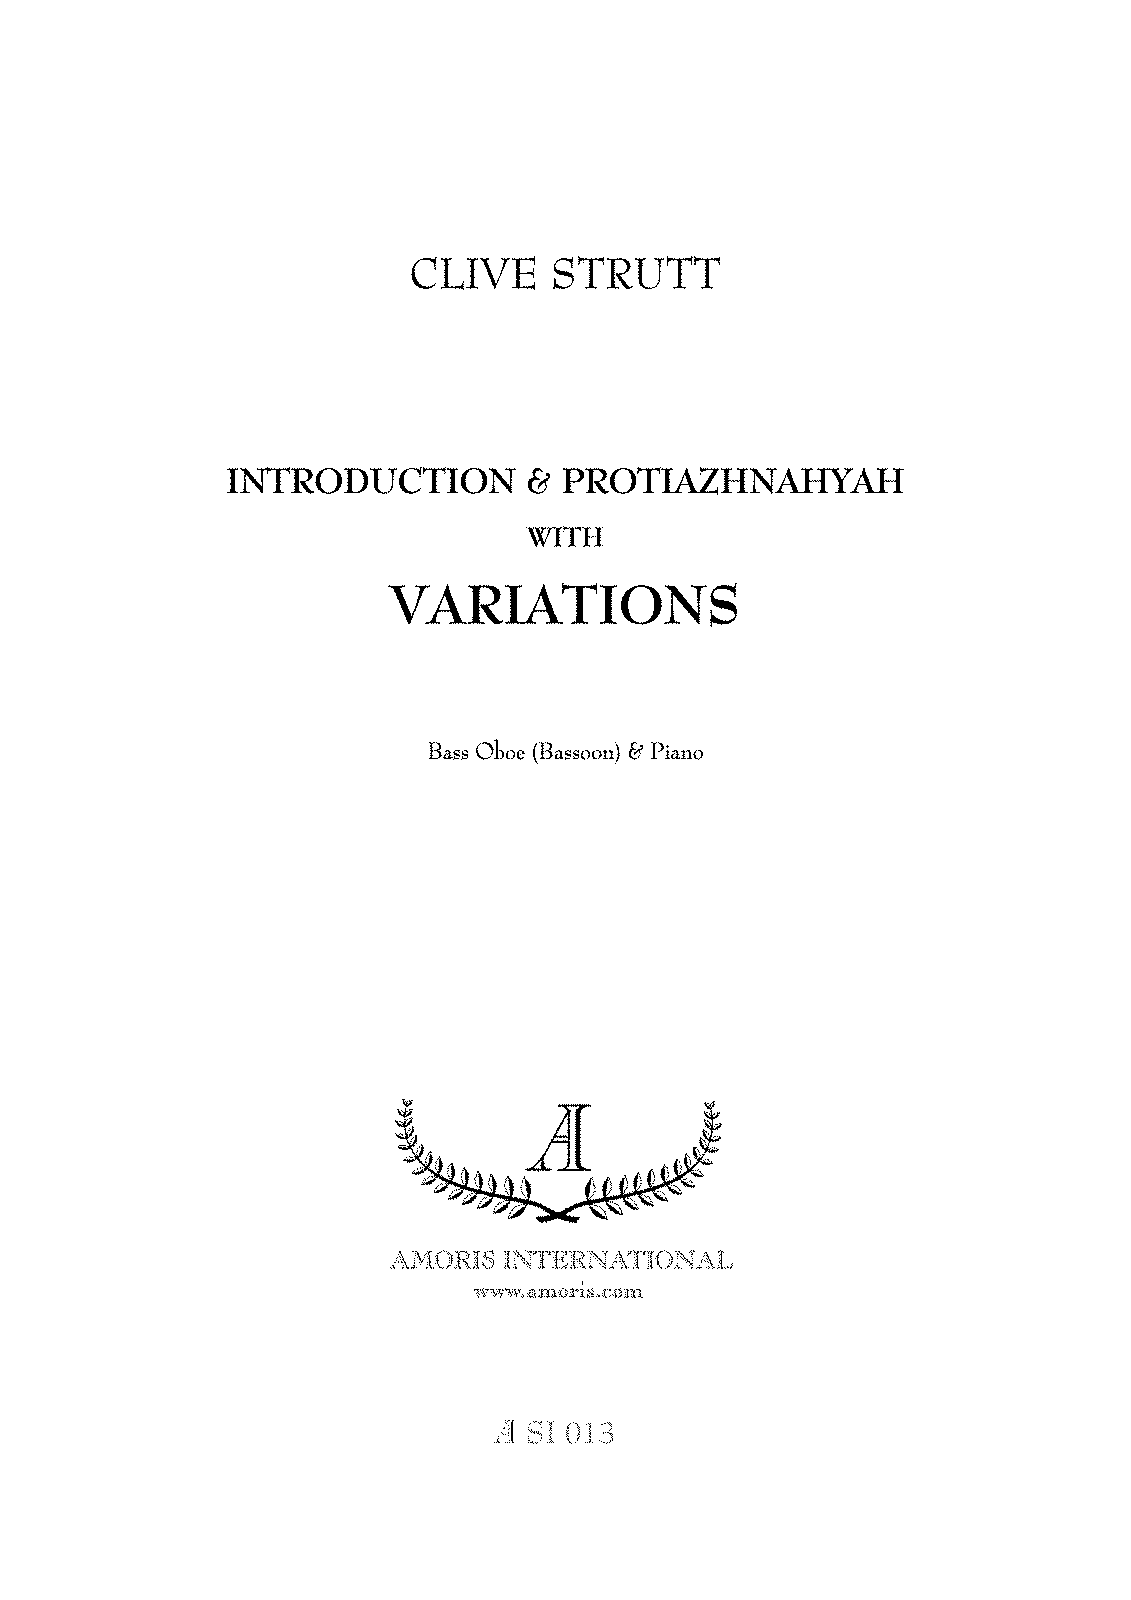 WIMA.99fe-Intro-and-Protiazhnahyah.pdf